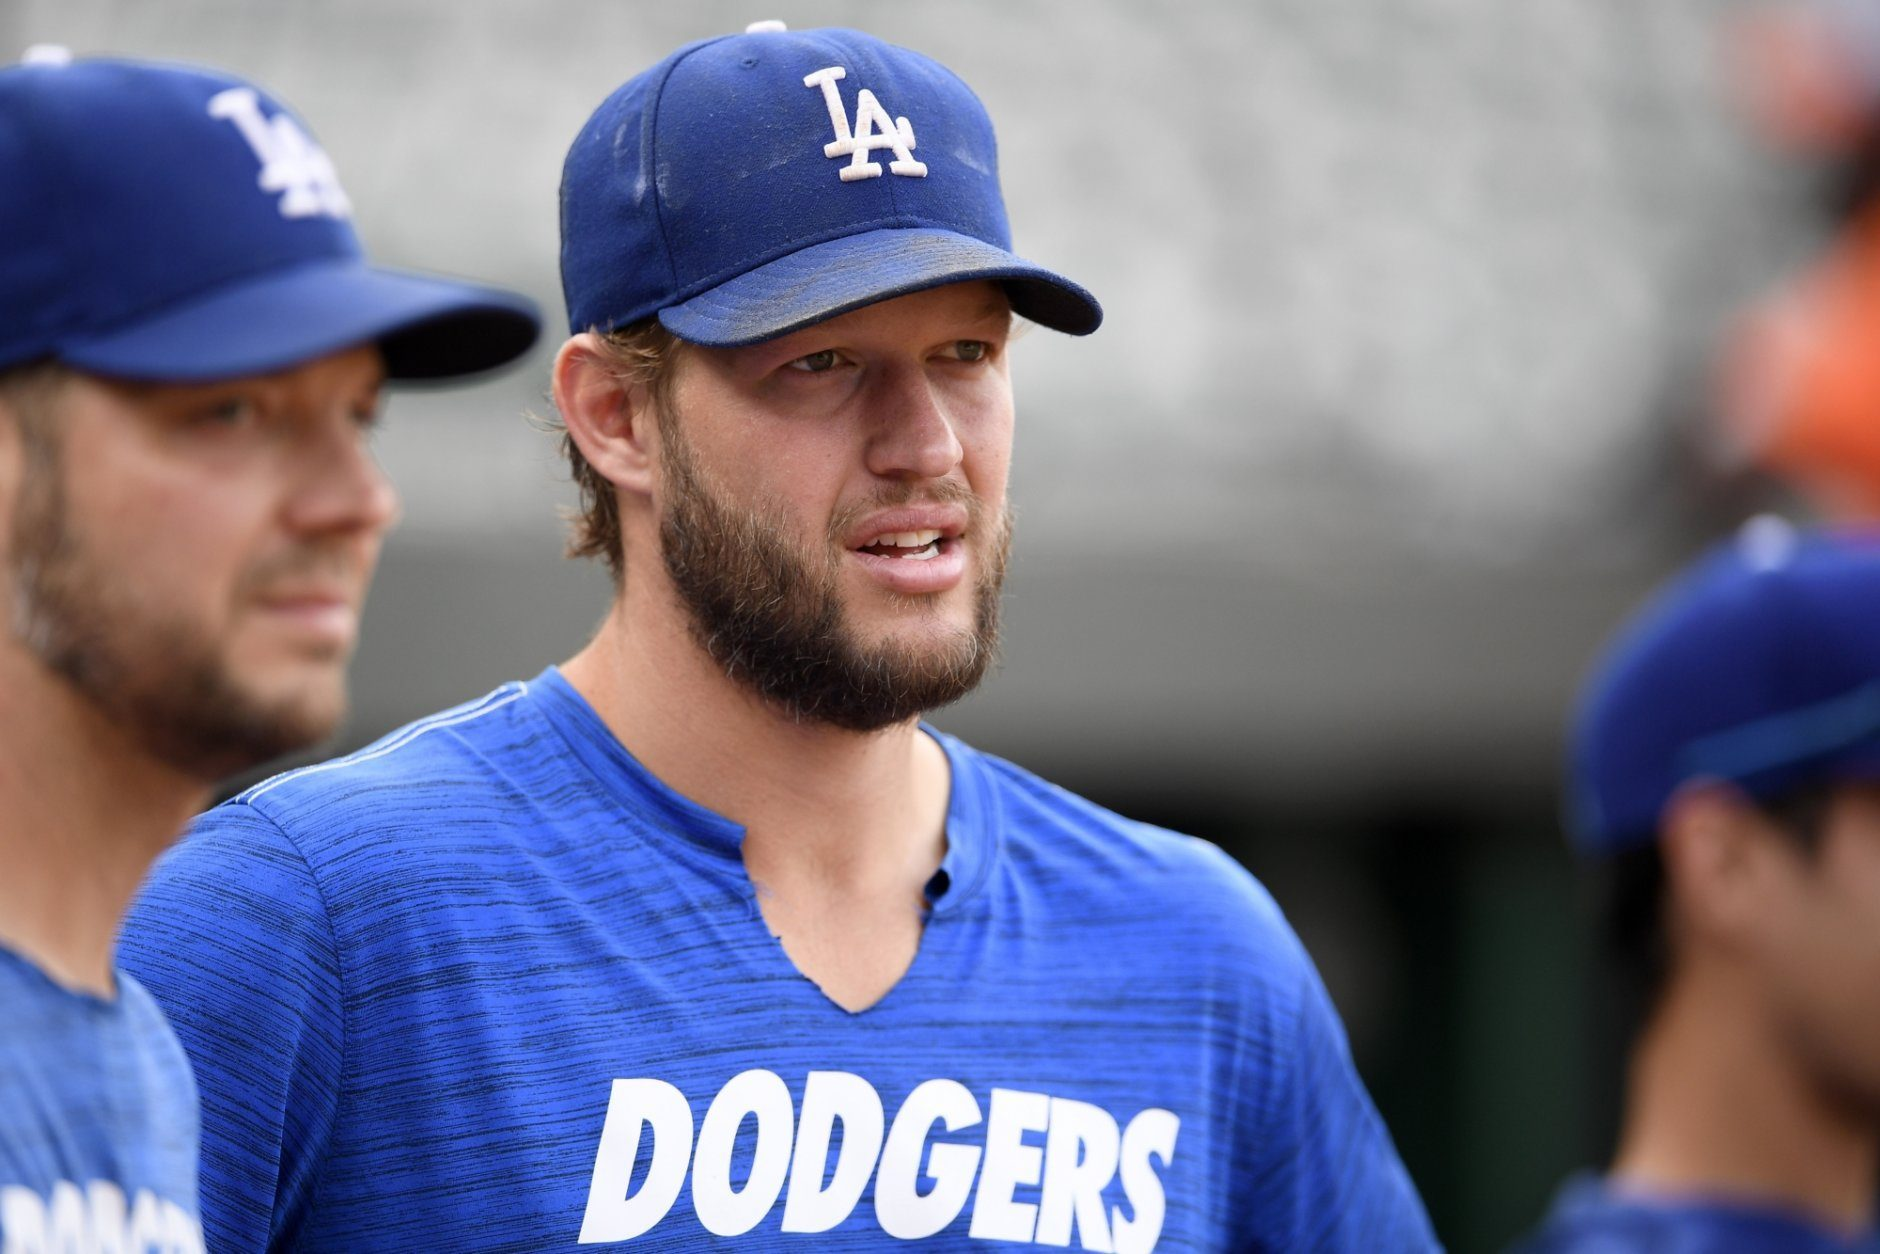 Los Angeles Dodgers' Clayton Kershaw stands on the field before a baseball game against the Baltimore Orioles, Tuesday, Sept. 10, 2019, in Baltimore. (AP Photo/Nick Wass)